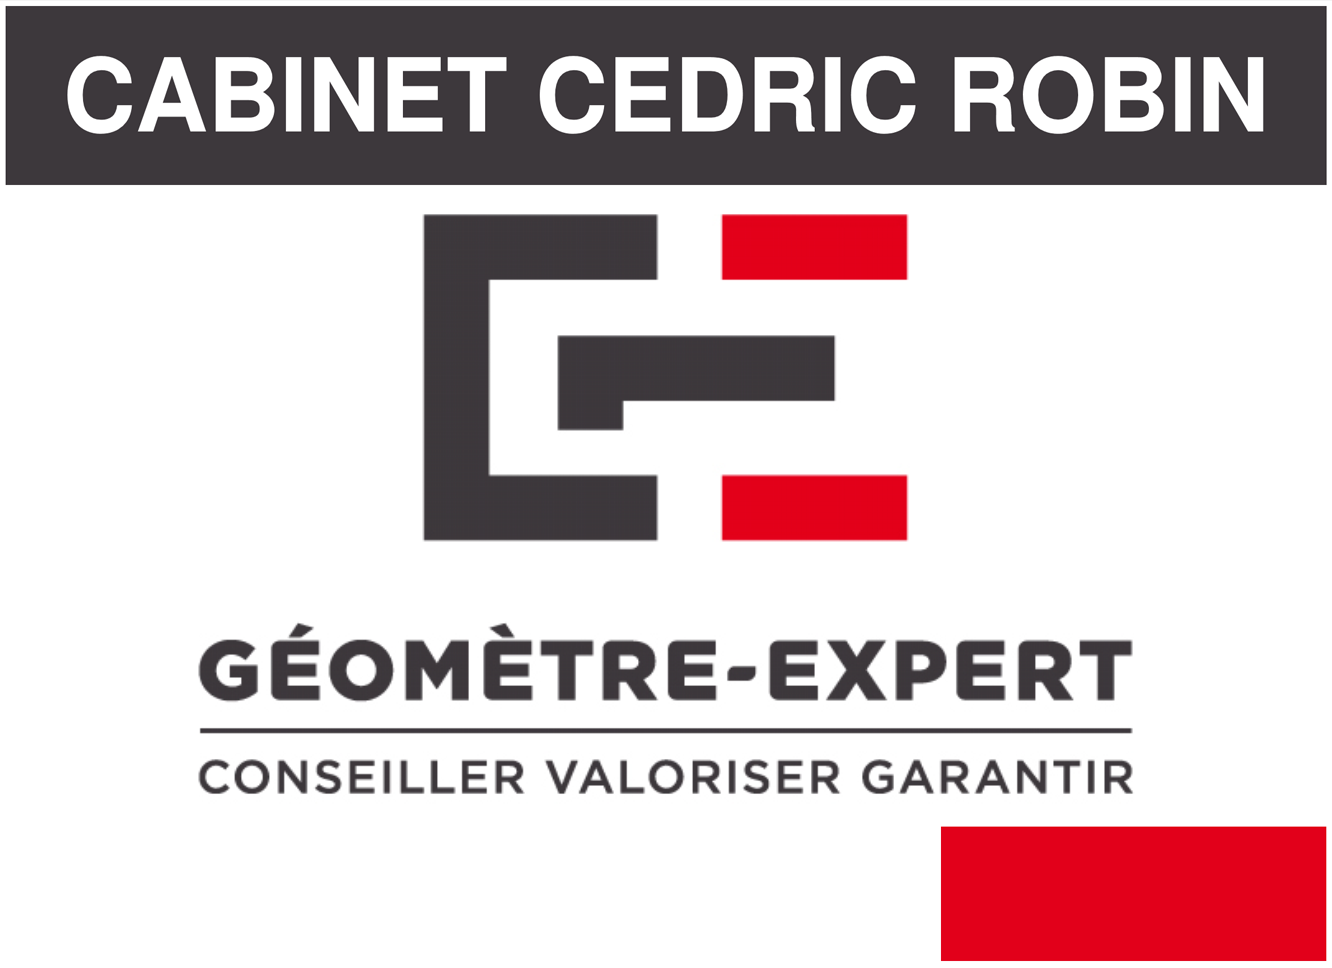 logo-cabinet-cdric-robin.png